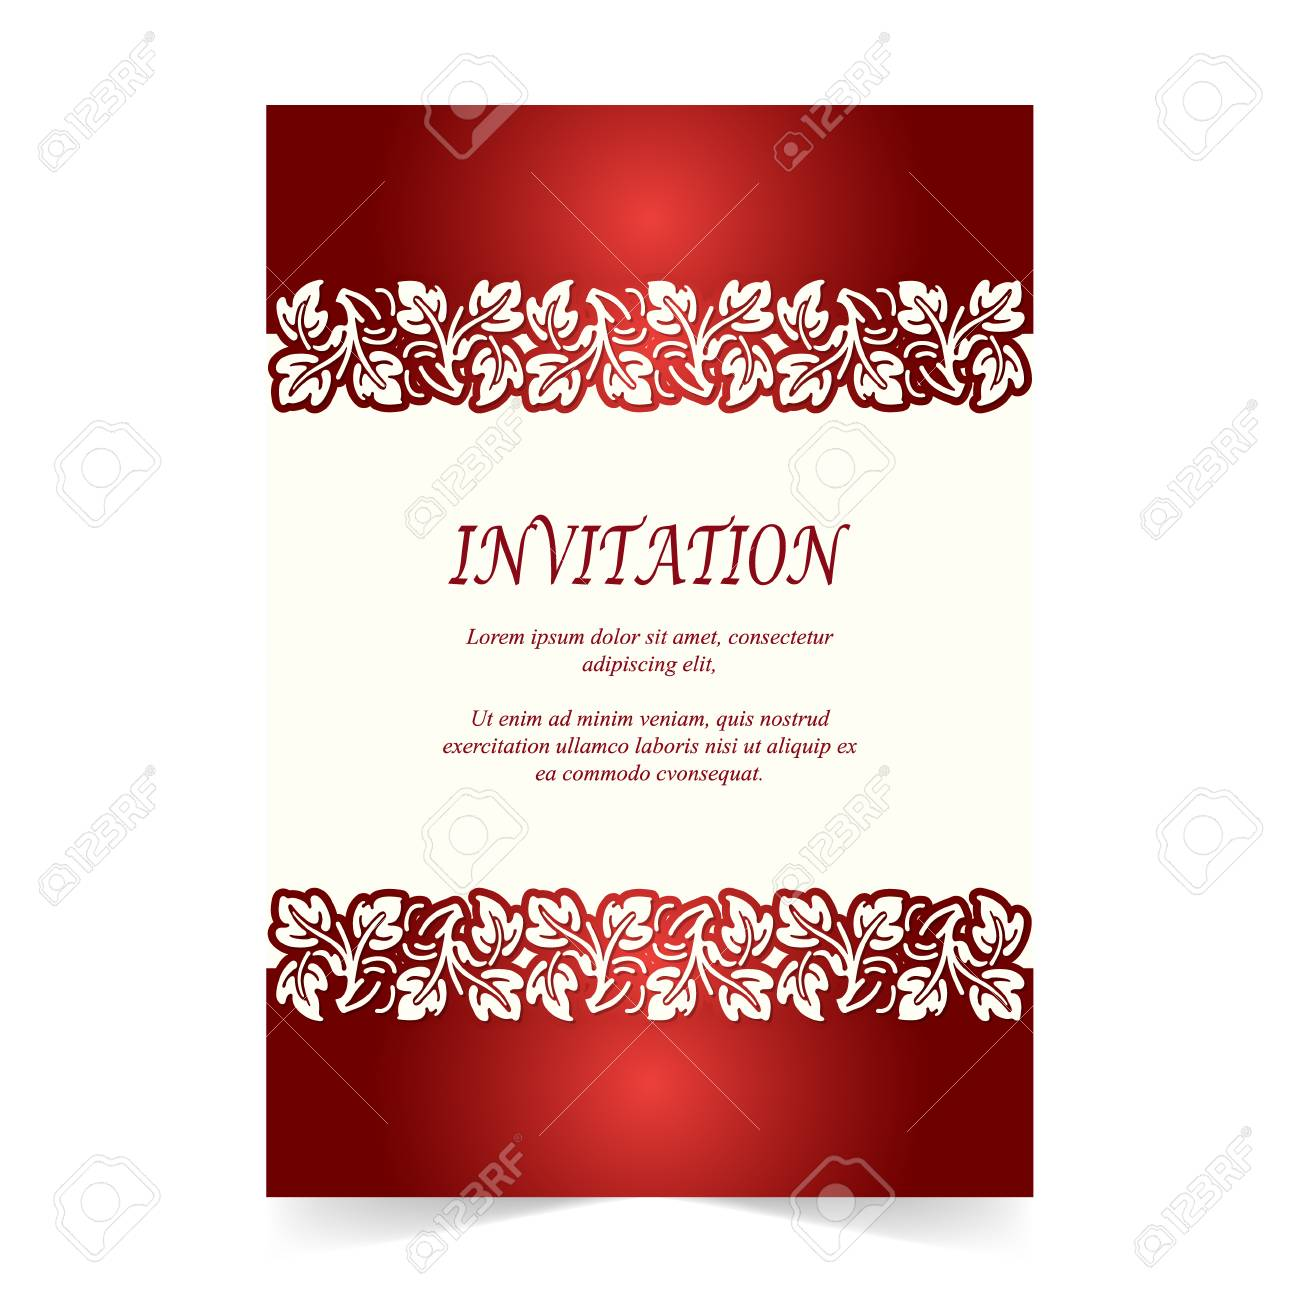 Invitation Card, Wedding Card With Ornament On Ivory And Red ...